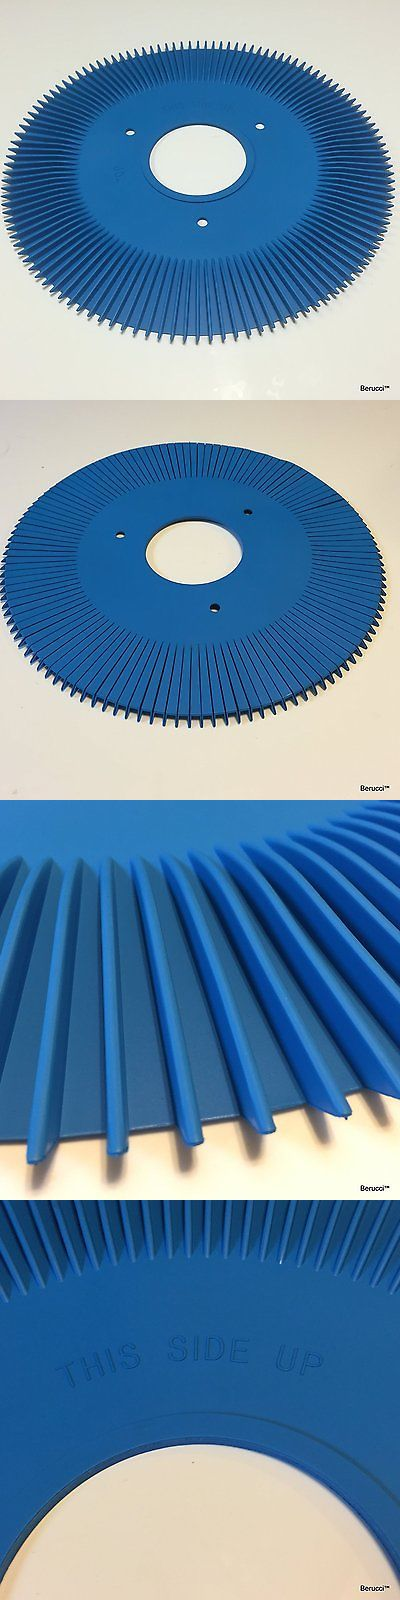 Pool Cleaner Replacement Pleated Seal Disc Skirt For Kreepy Krauly K12894 K12896 Ebay Pool Cleaning Pool Equipment Cover Pool Equipment